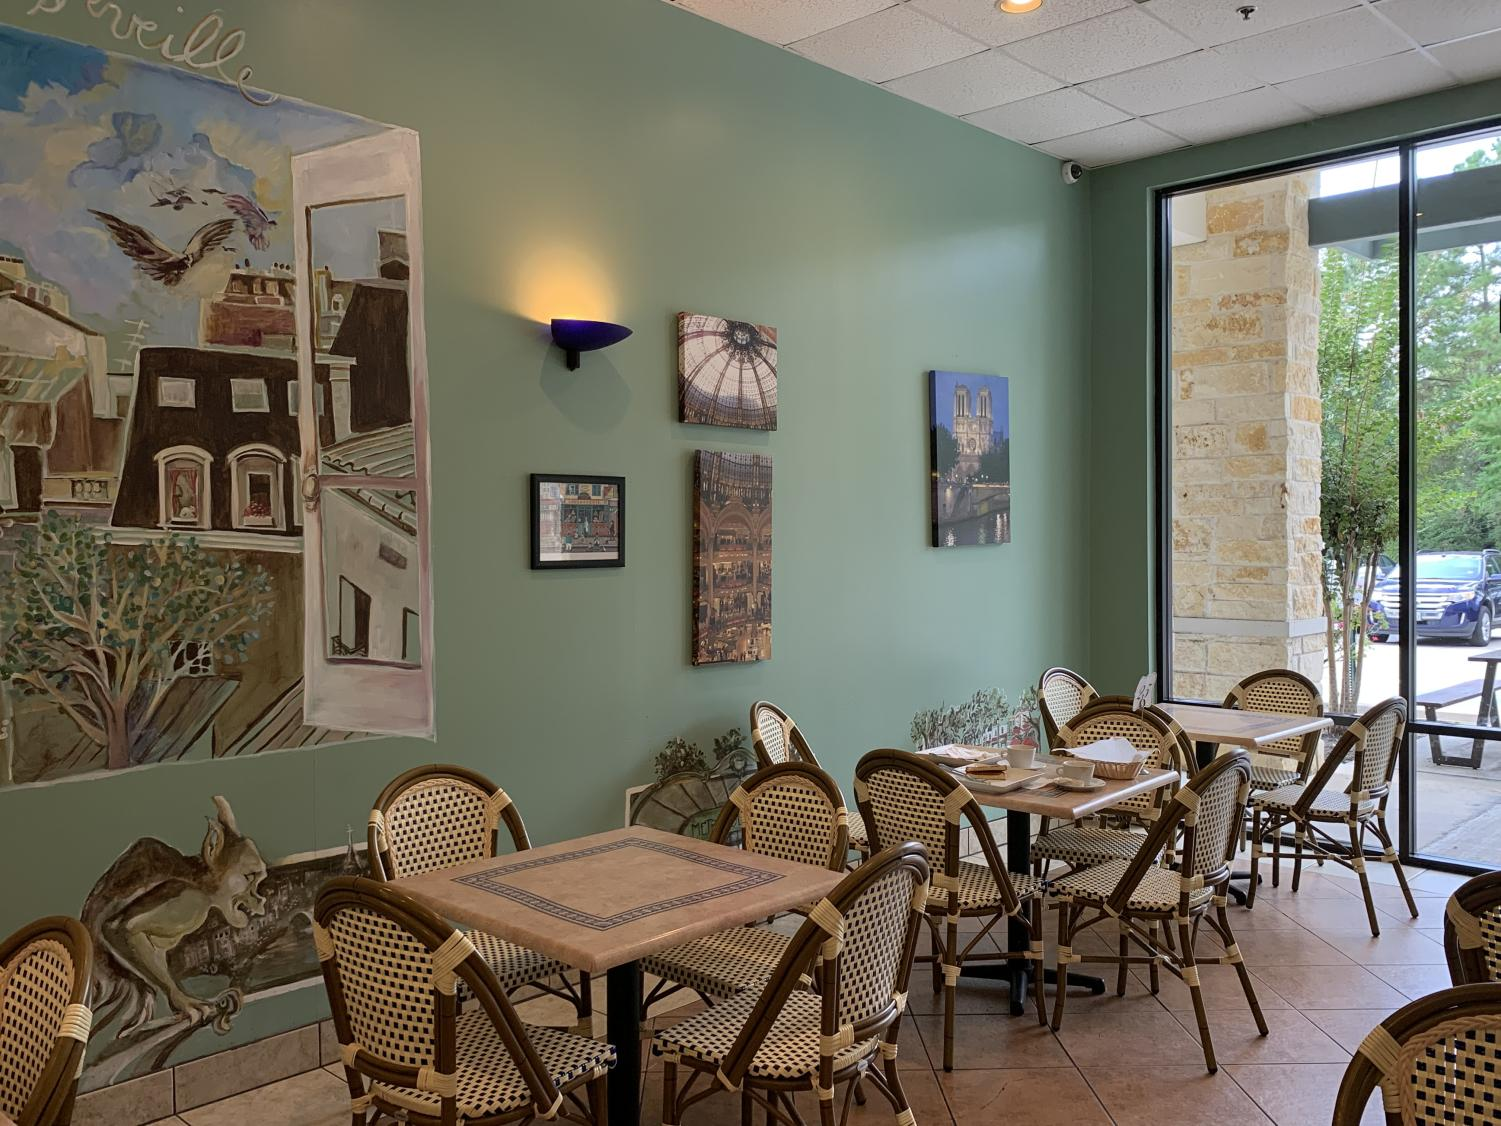 Bright windows and comfortable seating make the cafe a great place any time.